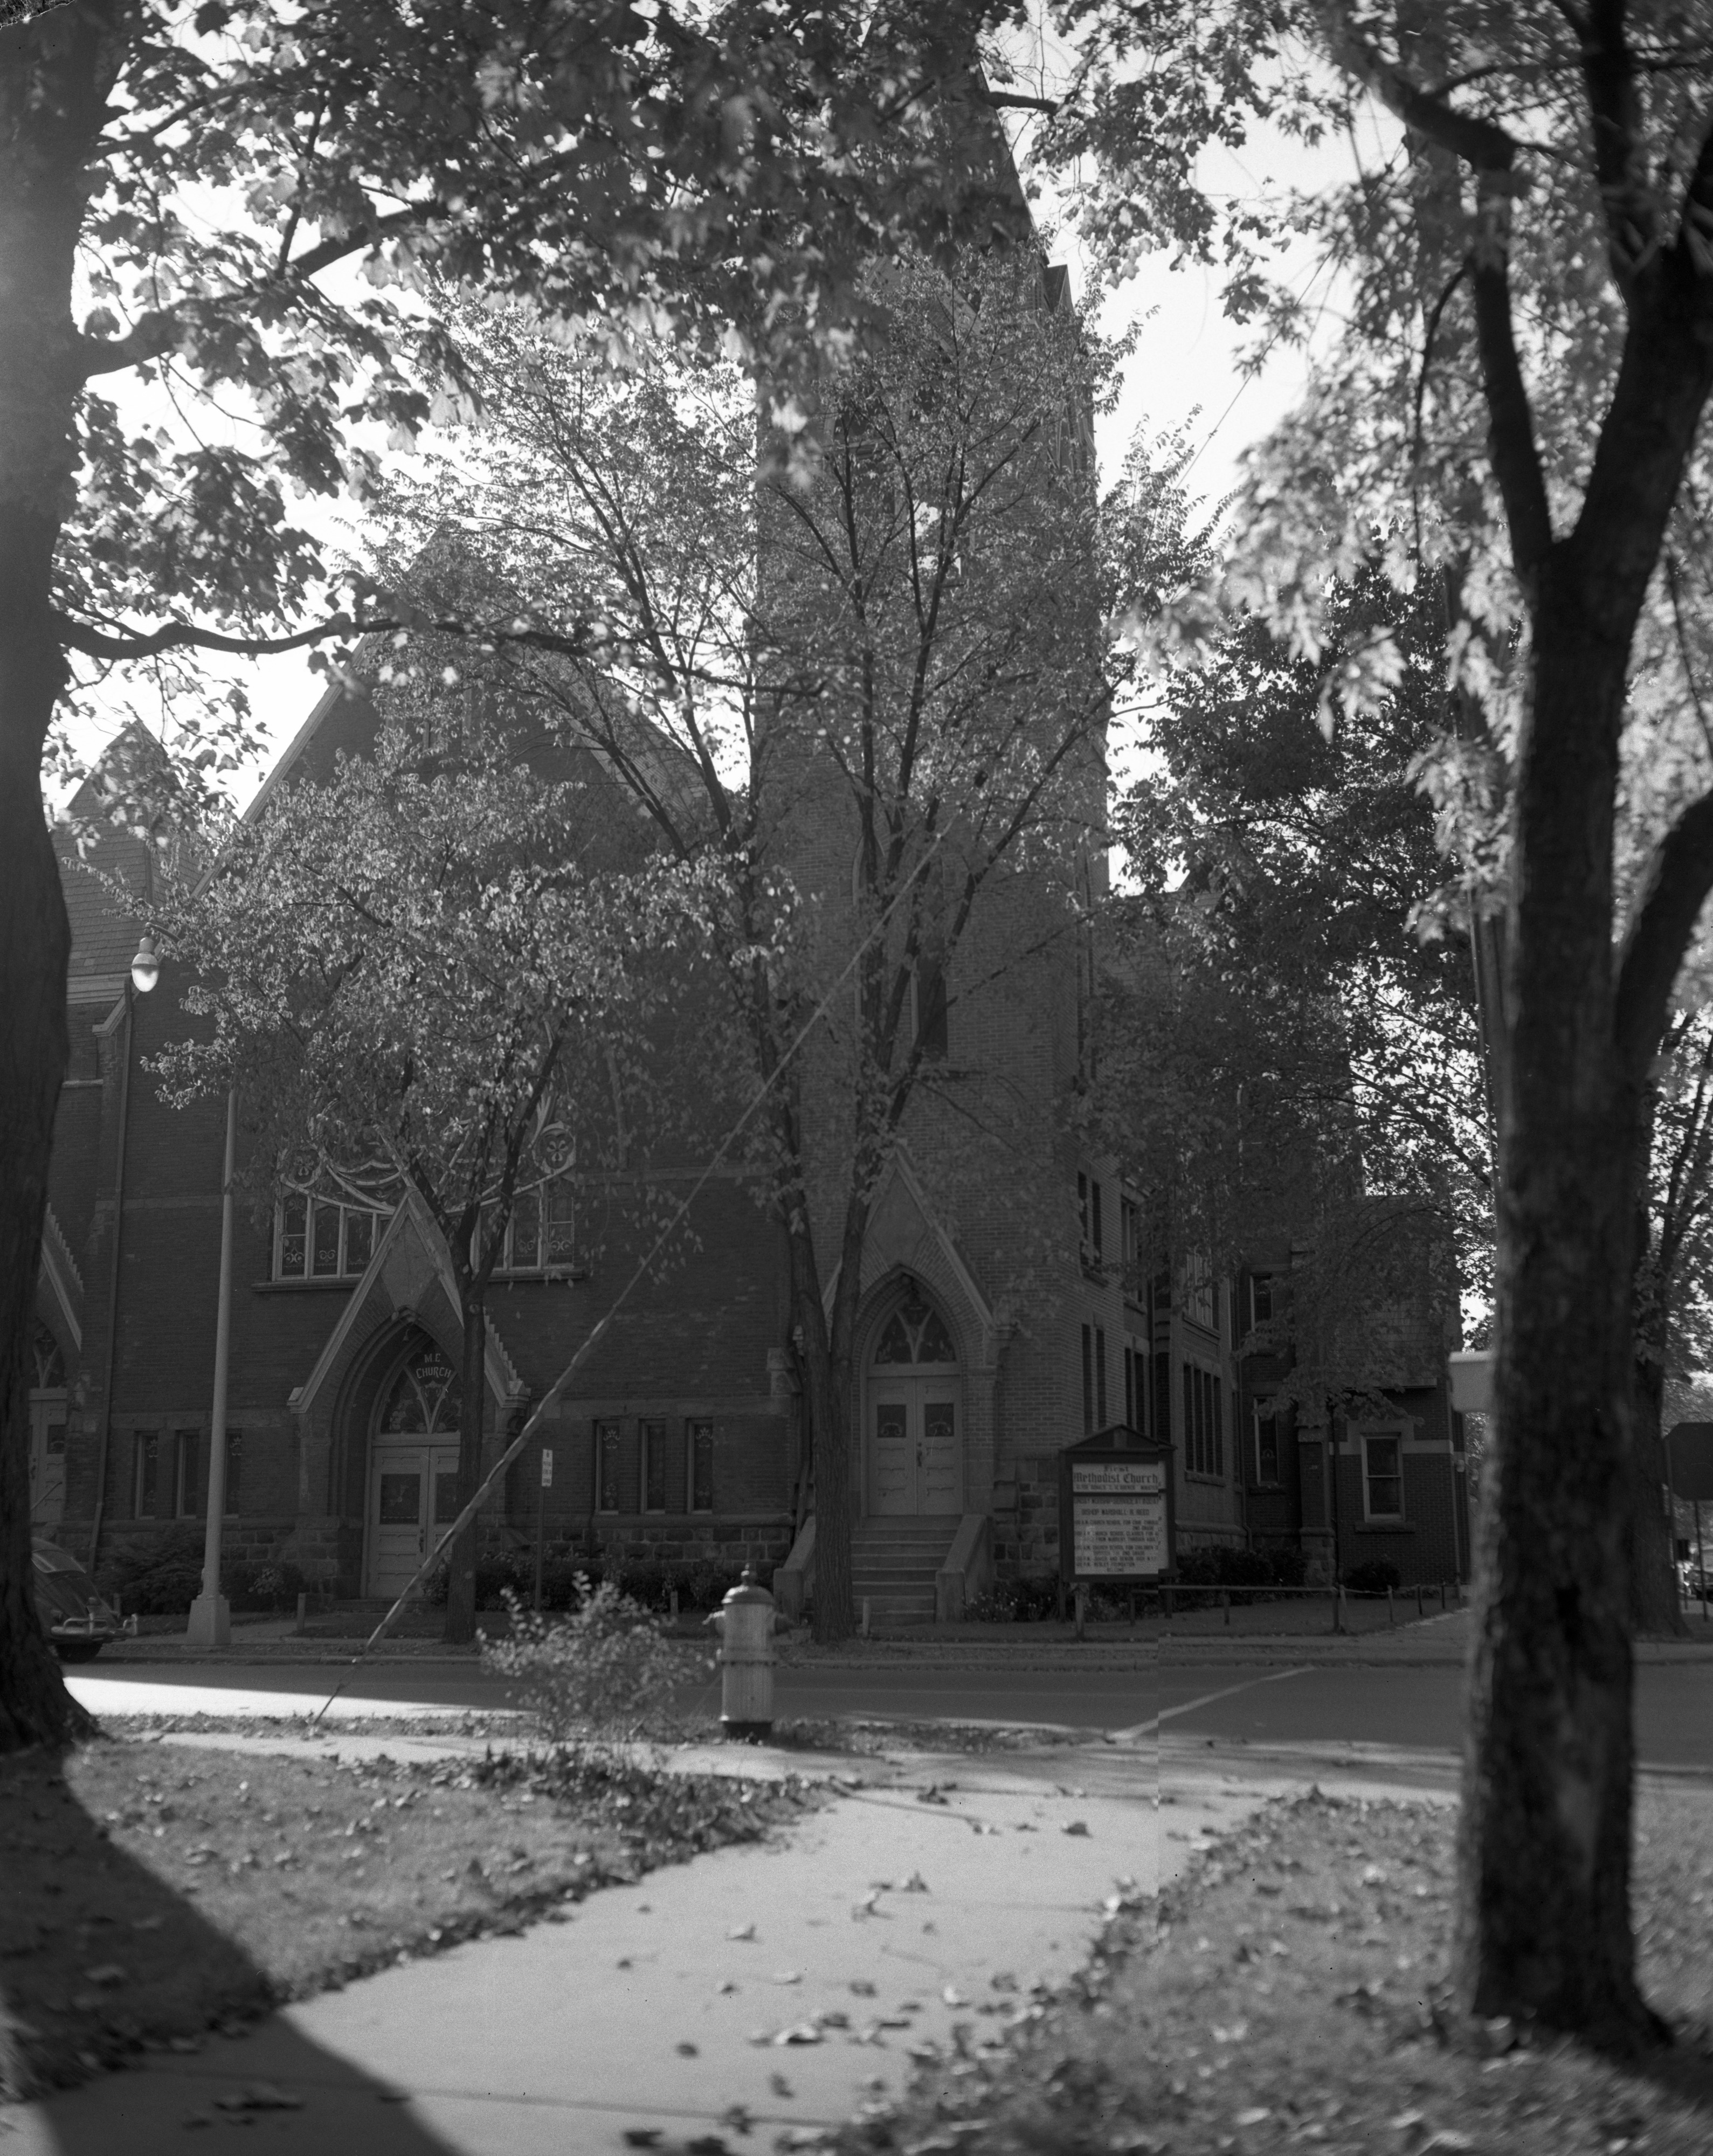 First Methodist Church of Ypsilanti, 1960 image